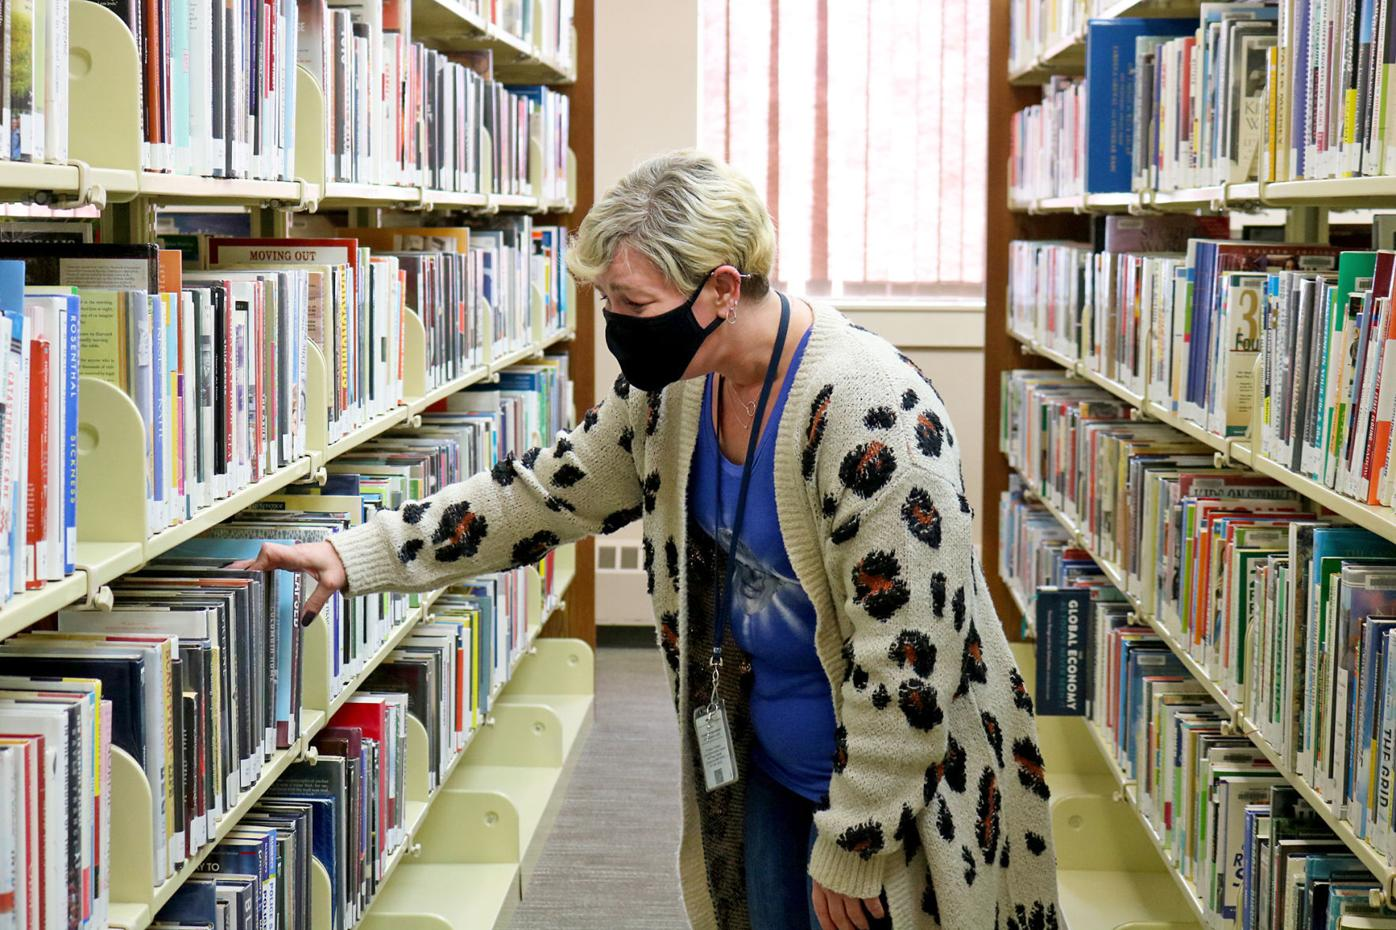 Owatonna Public Library express hours